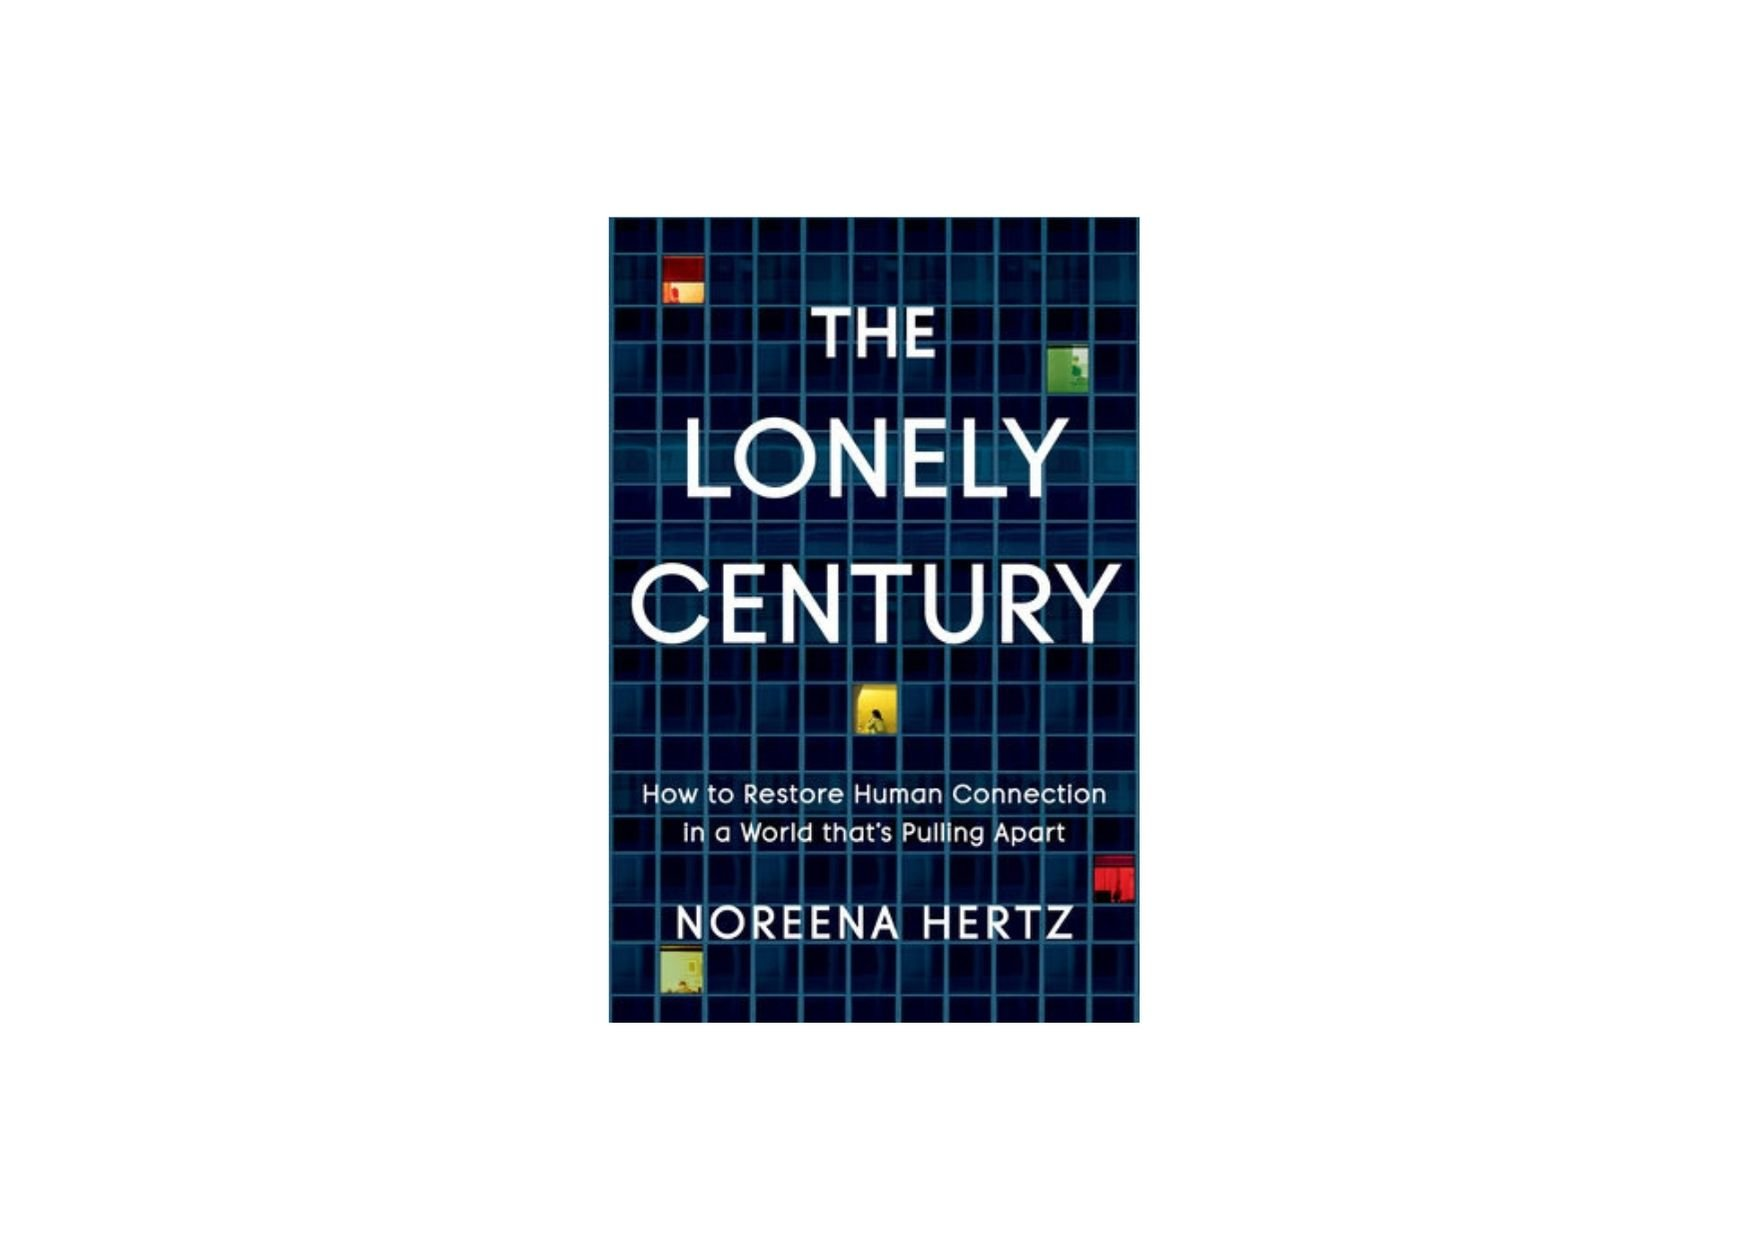 The Lonely Century is Ian Bremmer's Must Read